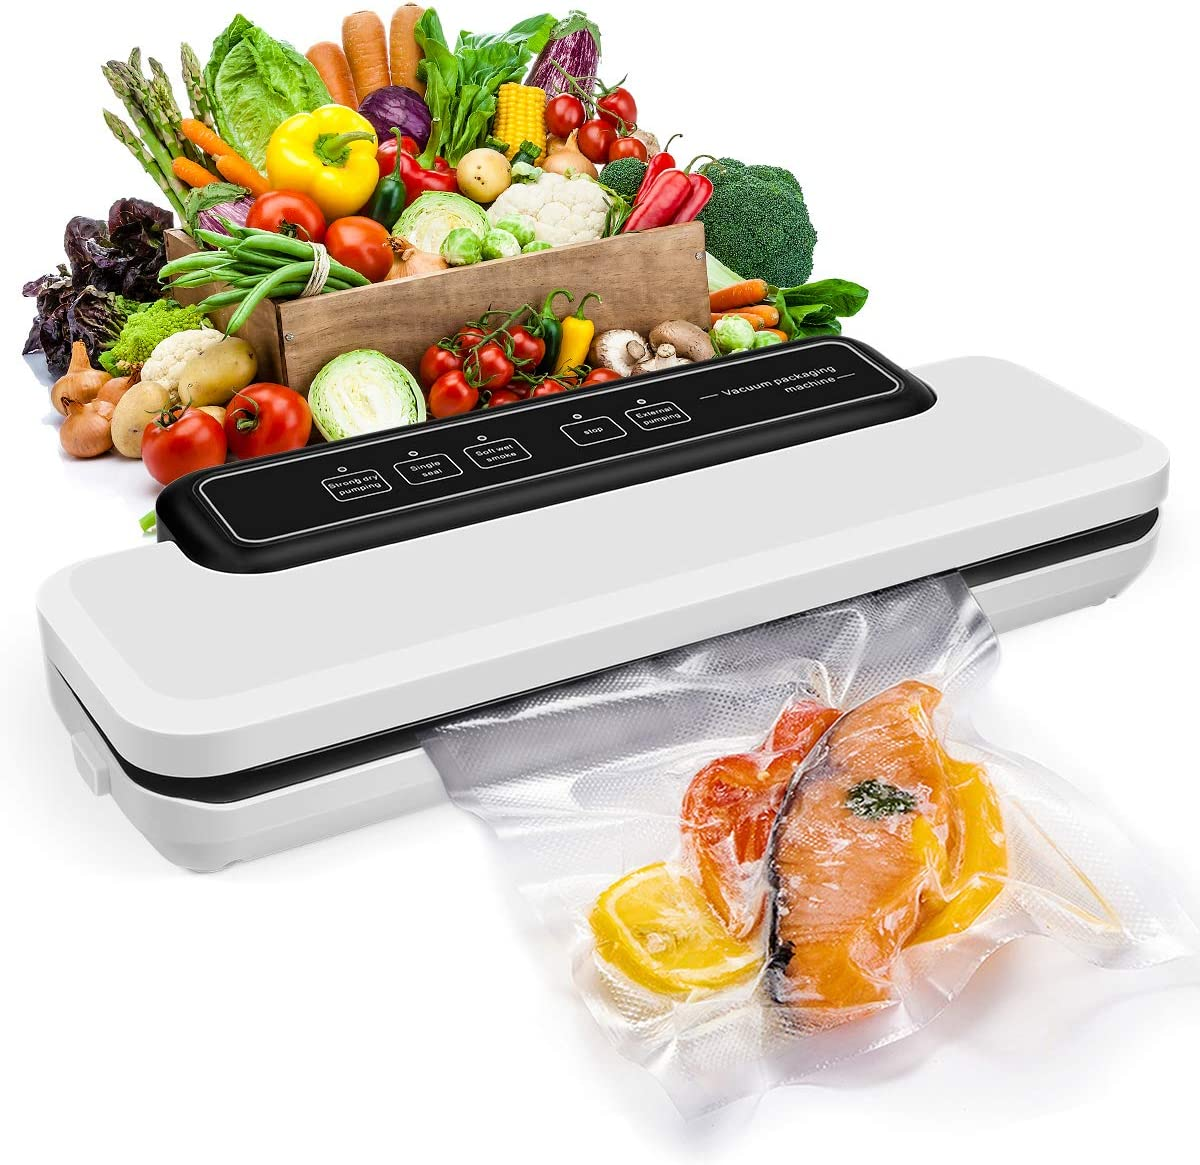 Vacuum Sealer Machine,Automatic Food Saver Machine, Compact Food Sealer Vacuum for Food Preservation, Dry & Moist Food Modes, Patented Cutter, Led Indicator Light, 2 Roll Vacuum Bags